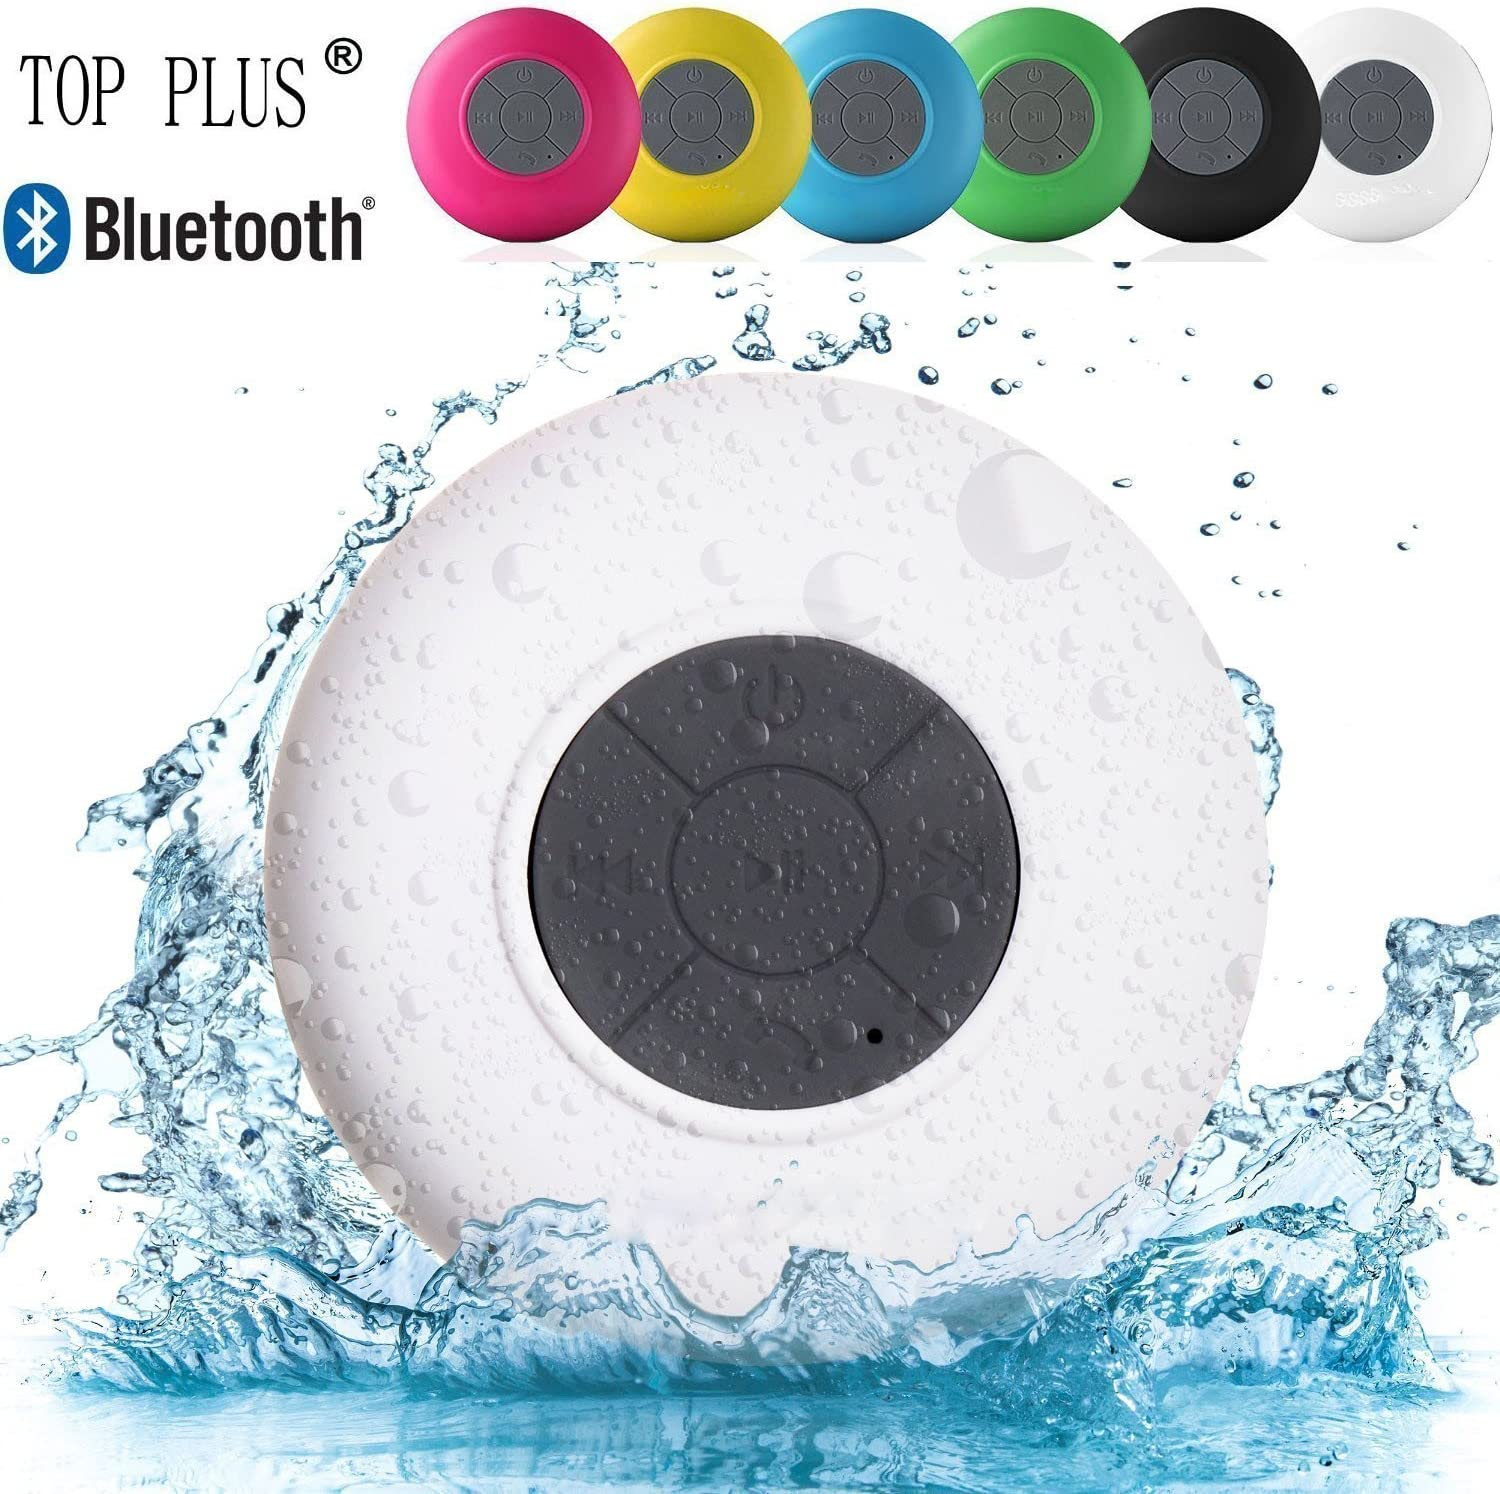 Beach Pool Outdoor Brotherood Water Resistant Waterproof Bluetooth Smart Speaker Handsfree Portable with Built-in Microphone for Showers White